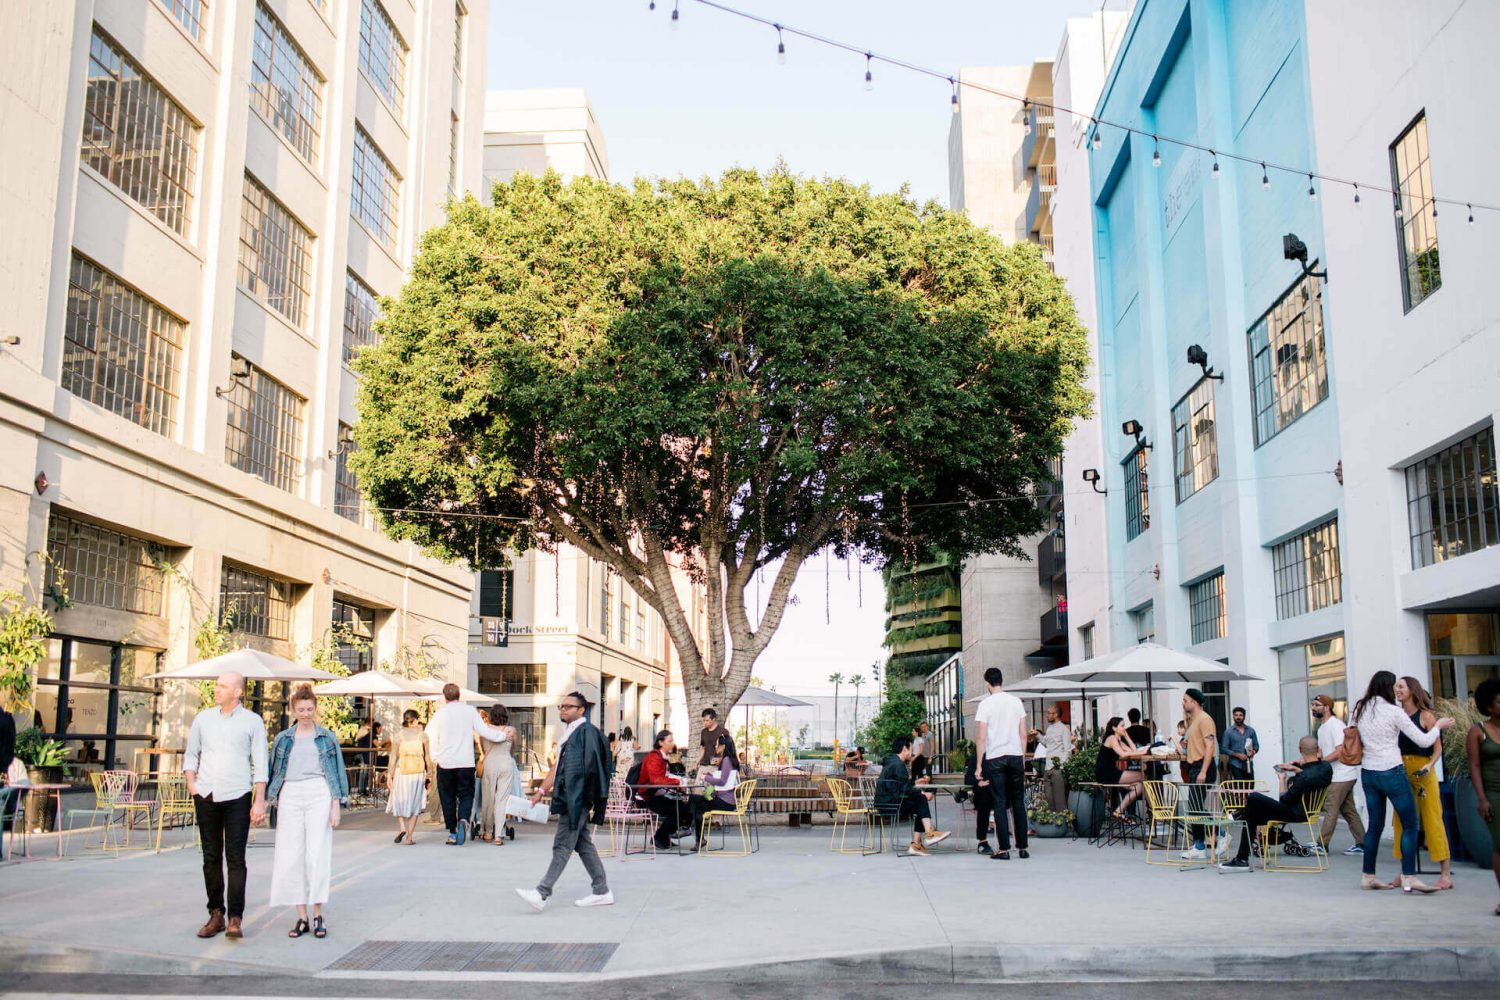 Los Angeles Design Festival 2019 event guide  los angeles design festival 2019 event guide LOS ANGELES DESIGN FESTIVAL 2019 EVENT GUIDE ROW LADesignFestival 1202LARGE